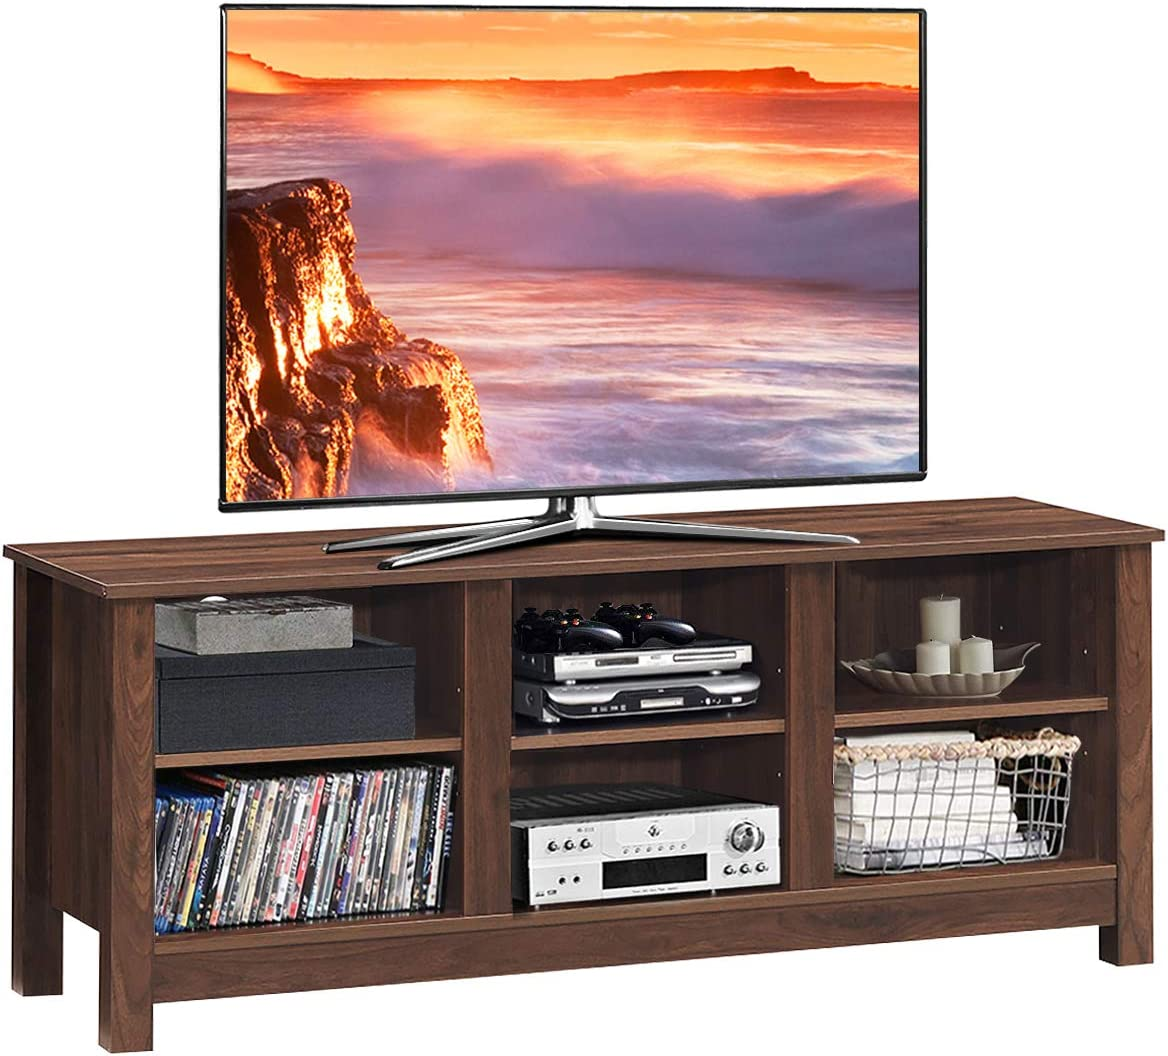 Tangkula TV Stand with 2-Shelf Storage, Fit 60 TV Media Center, Open Storage Console with Sturdy Frame, Versatile Entertainment Center Brown